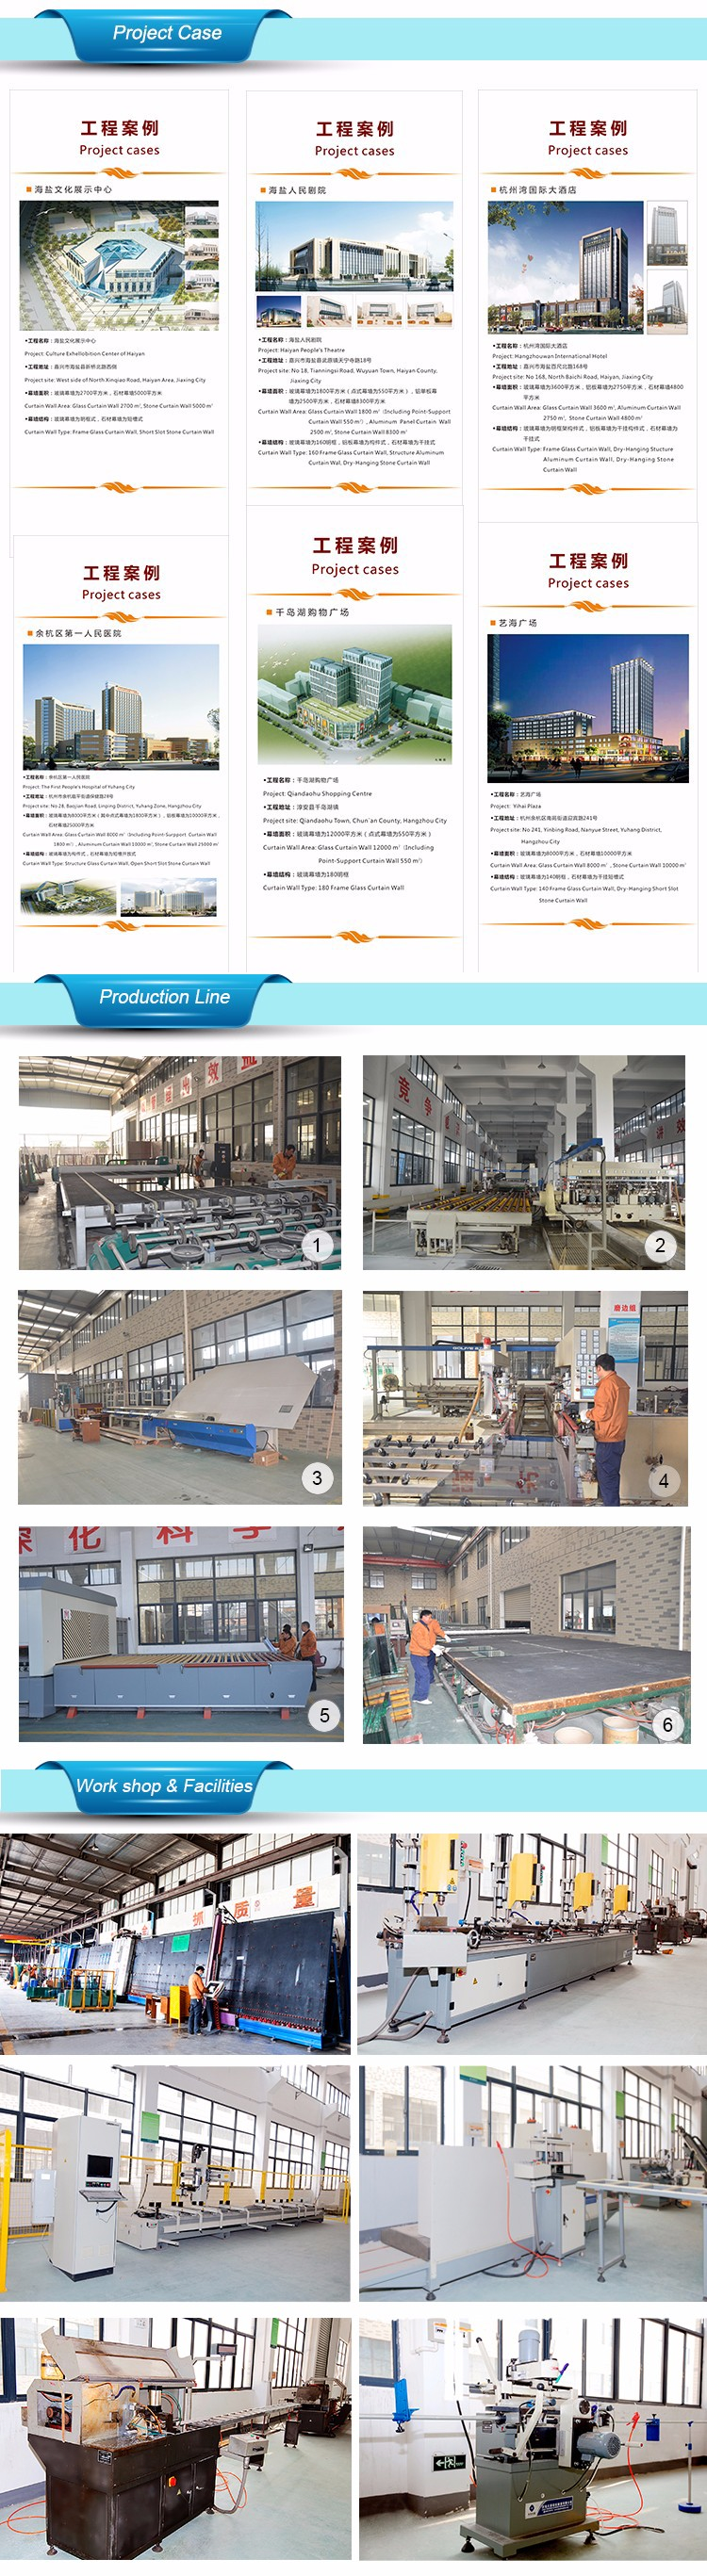 Price of Aluminum Window and Door,Plate Glass Window Prices 5912